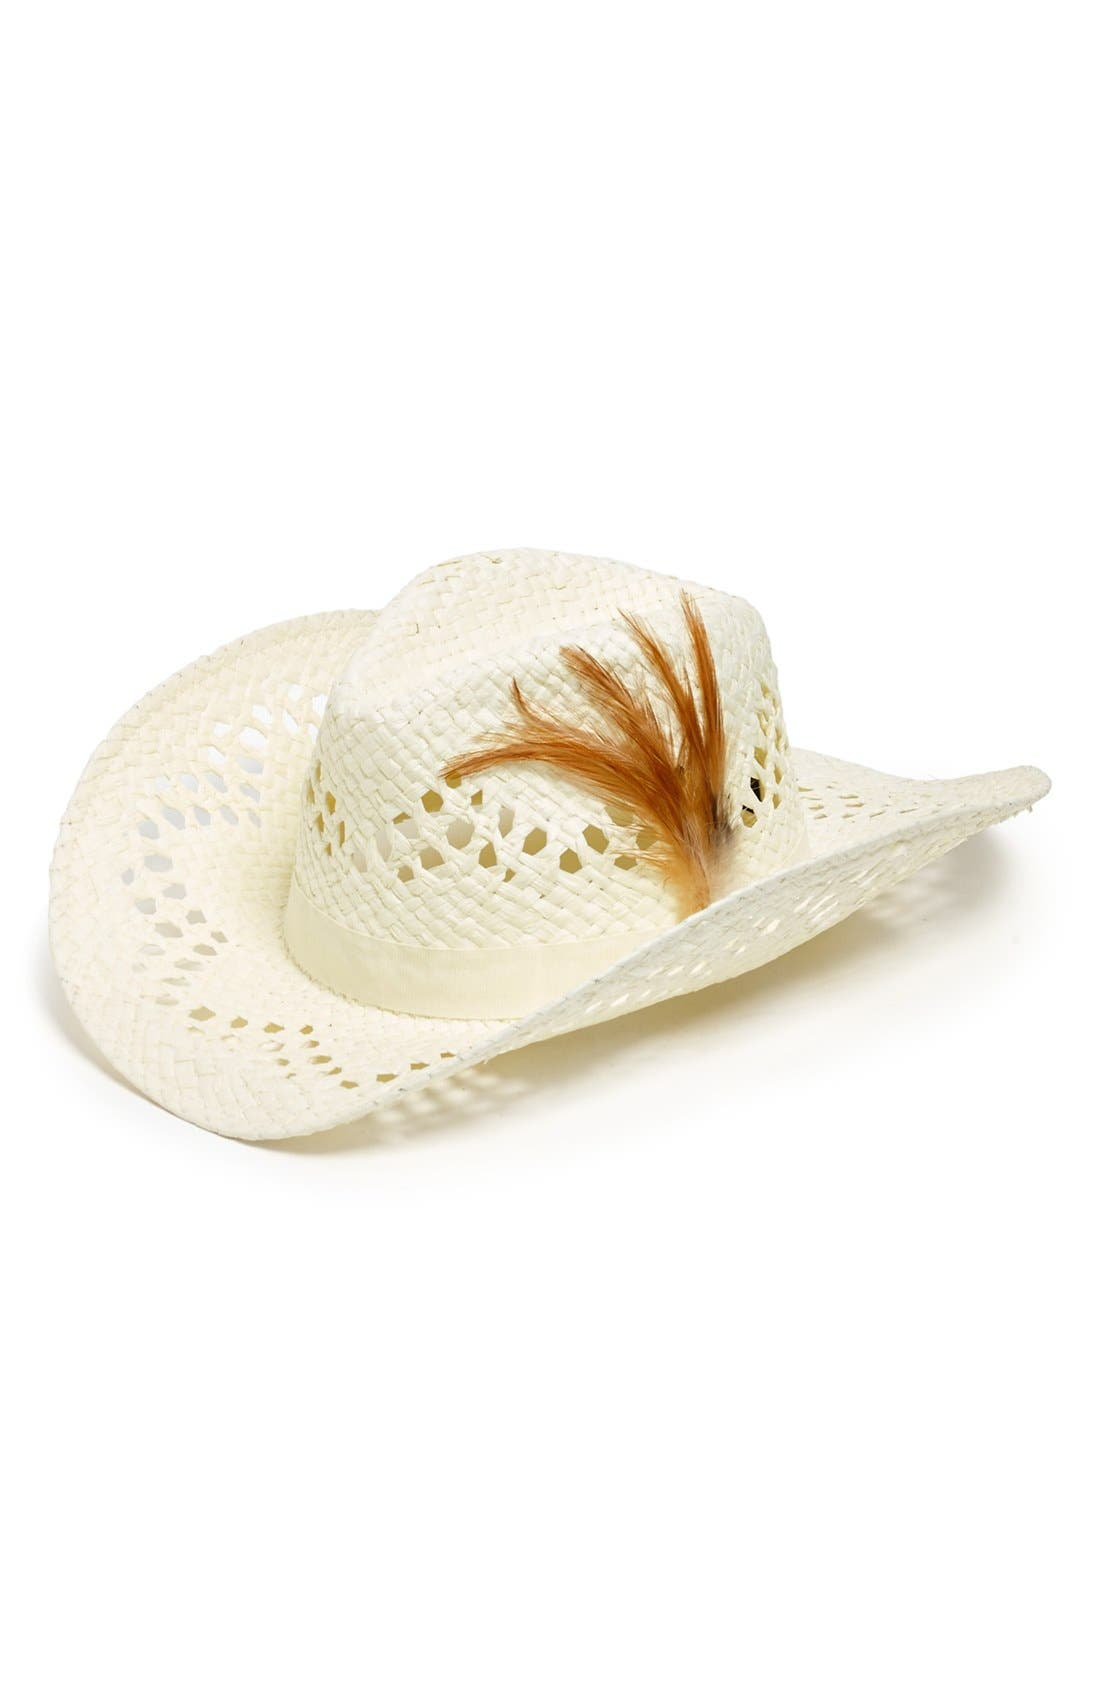 Alternate Image 1 Selected - David & Young Open Weave Cowboy Hat (Juniors) (Online Only)